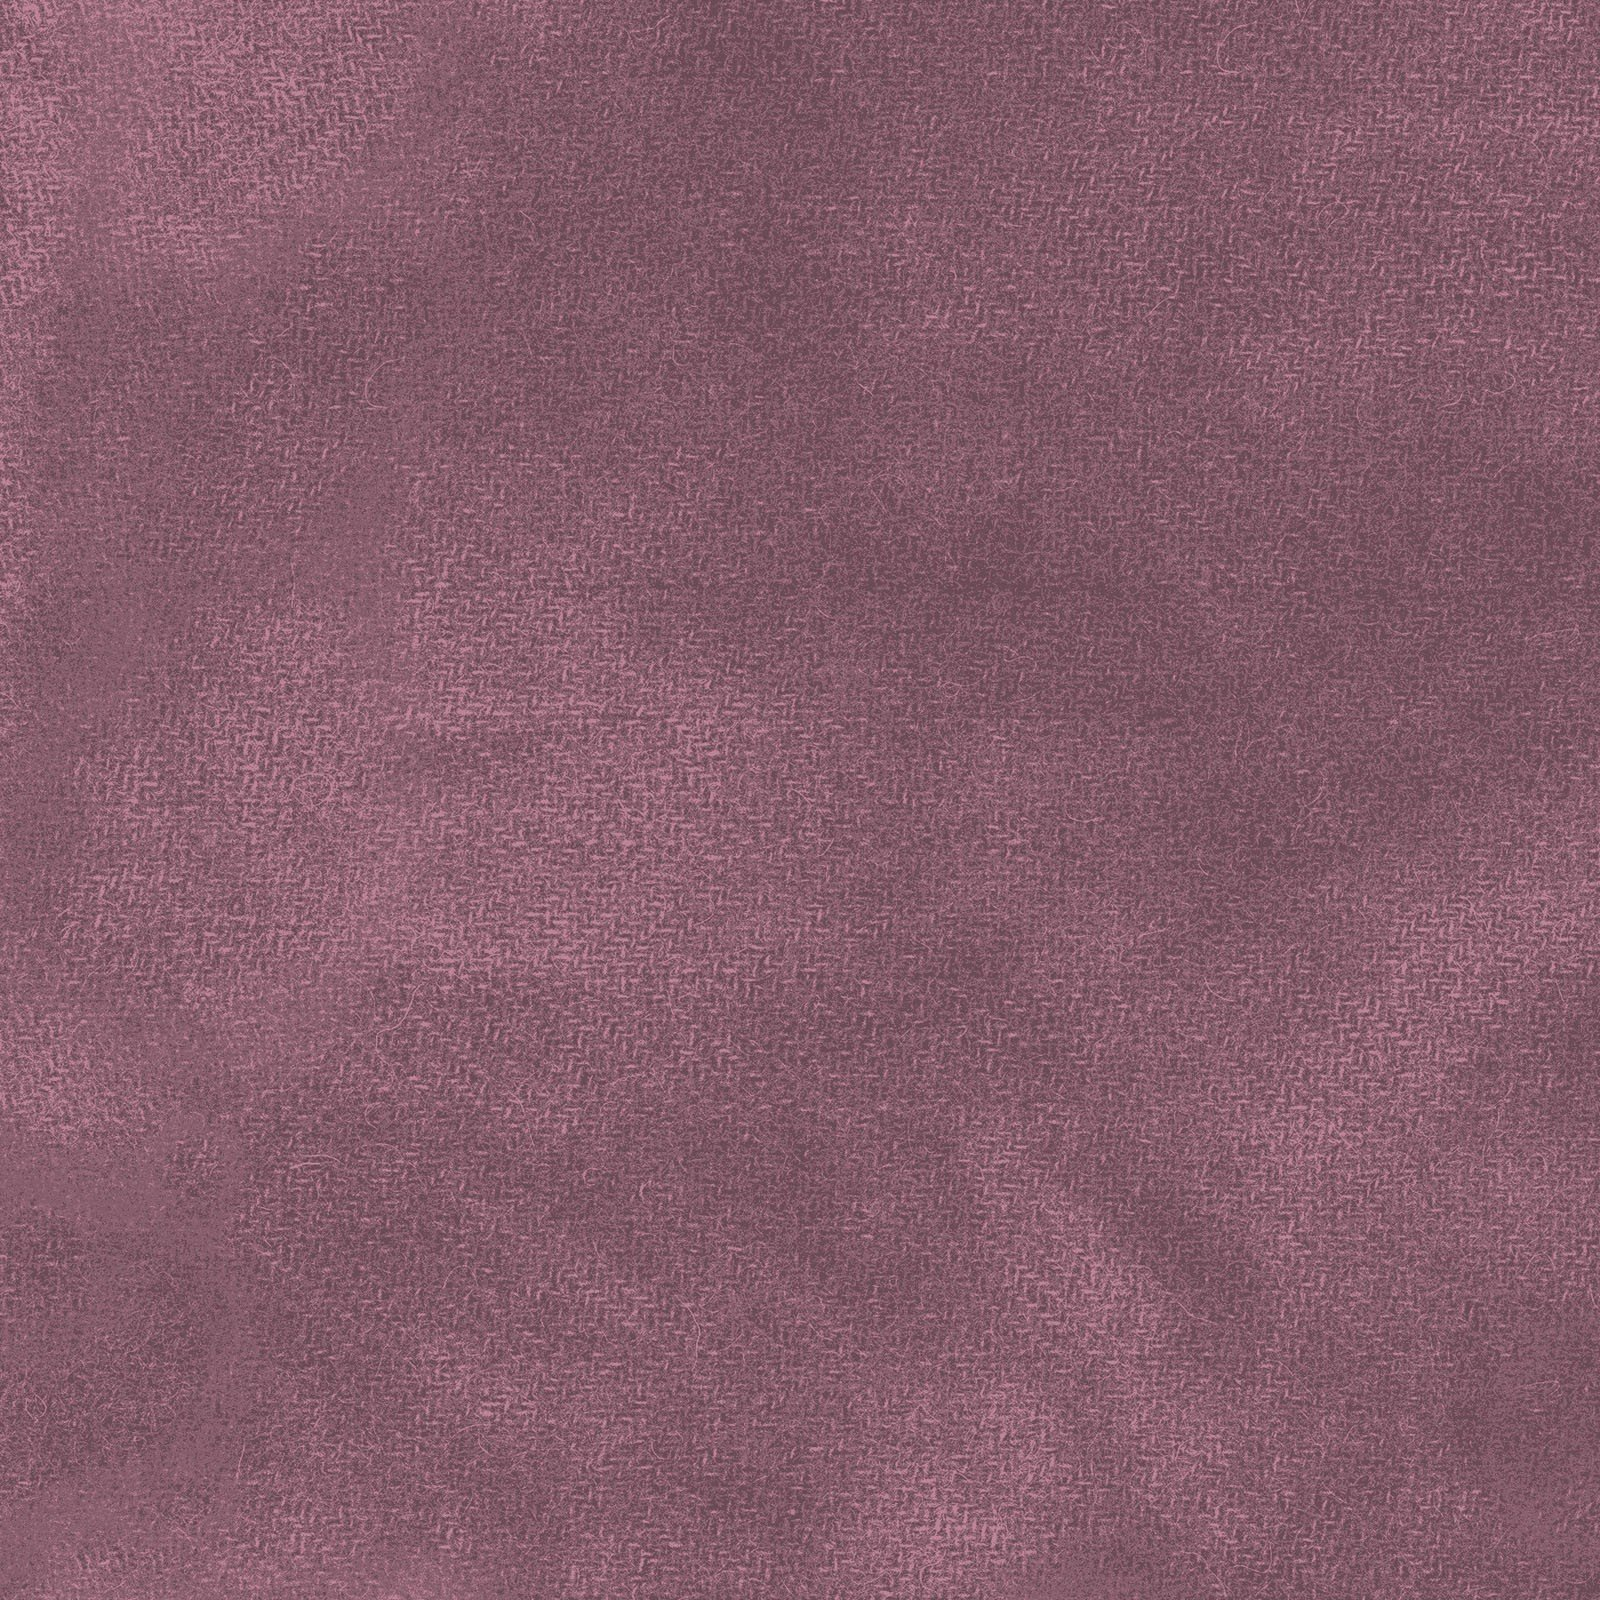 Color Wash Woolies Flannel - MASF9200-V2